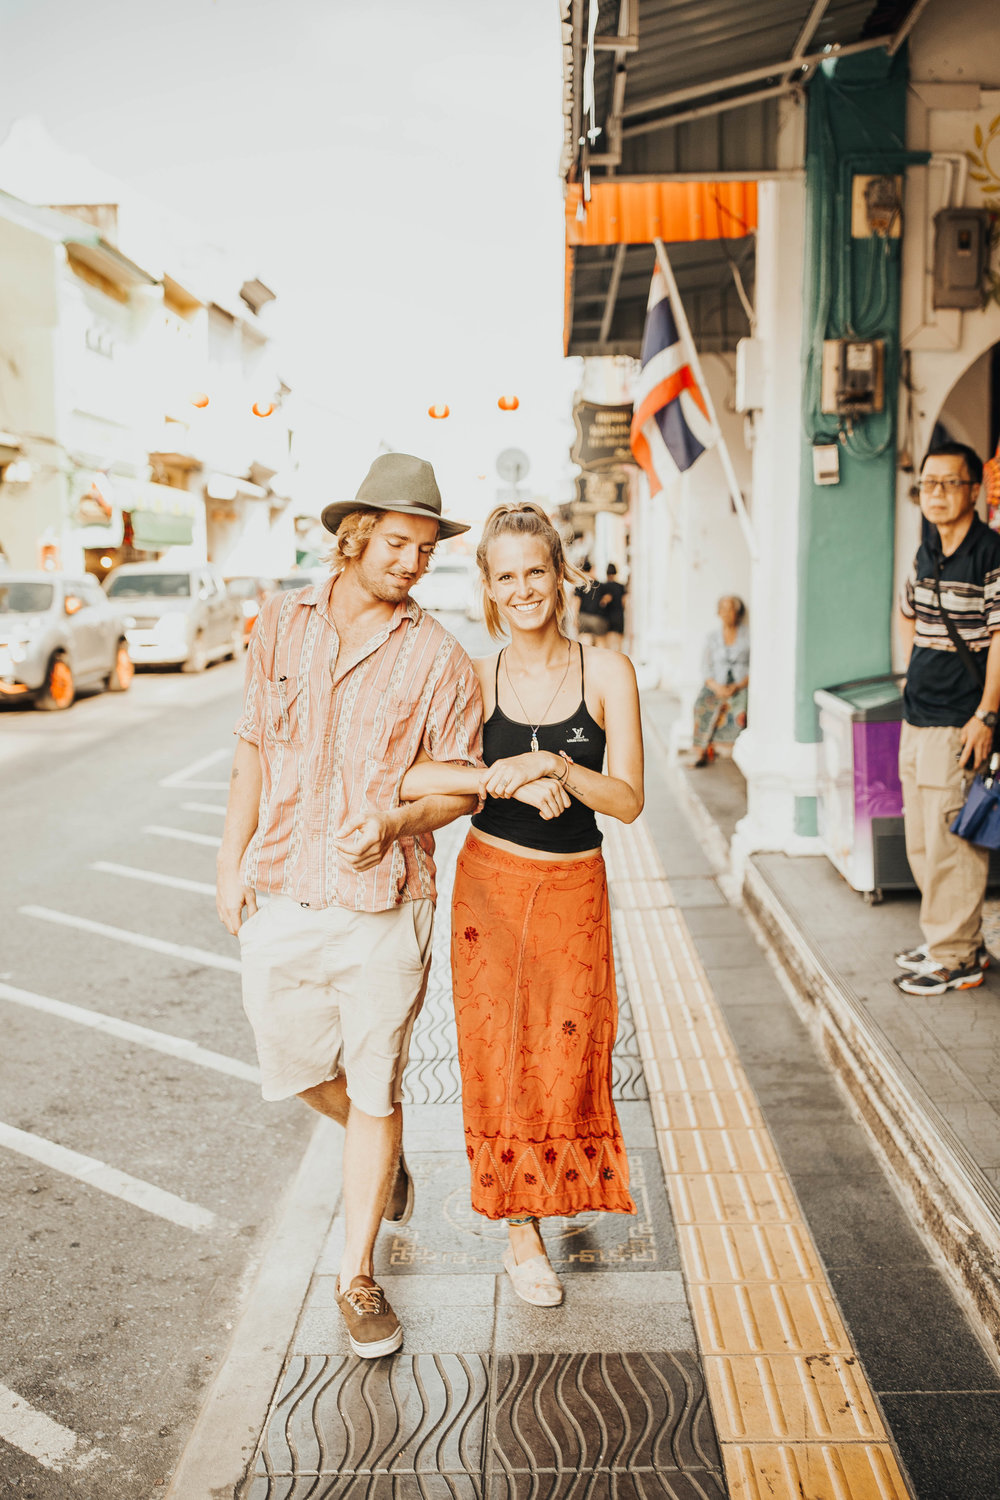 Julie and Will Old Town Phuket Couples Session 73.jpg